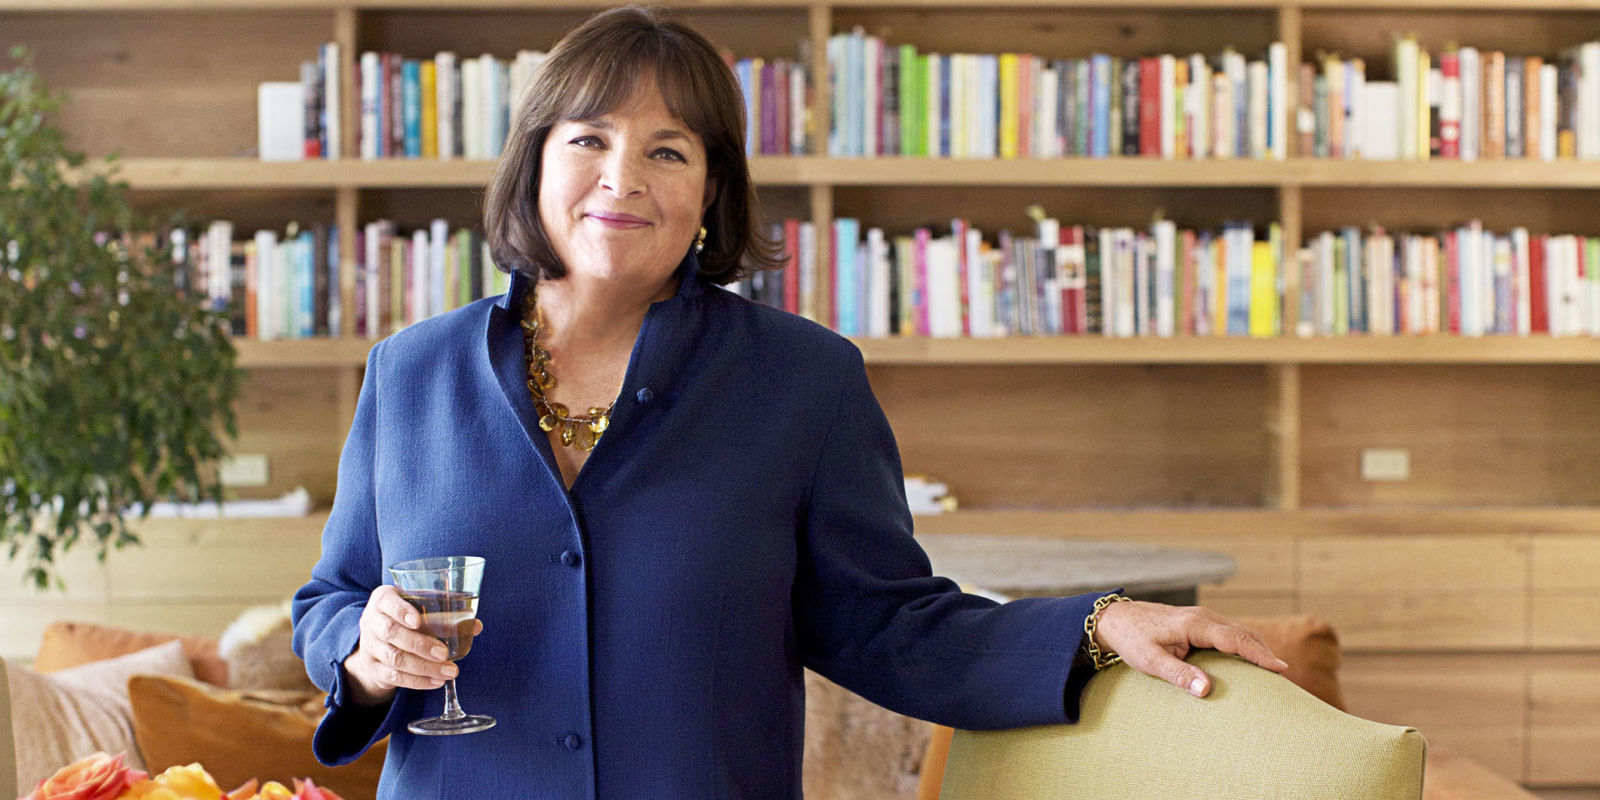 Ina garten 39 s new show ina garten show will answer for 50 kitchen ideas from the barefoot contessa